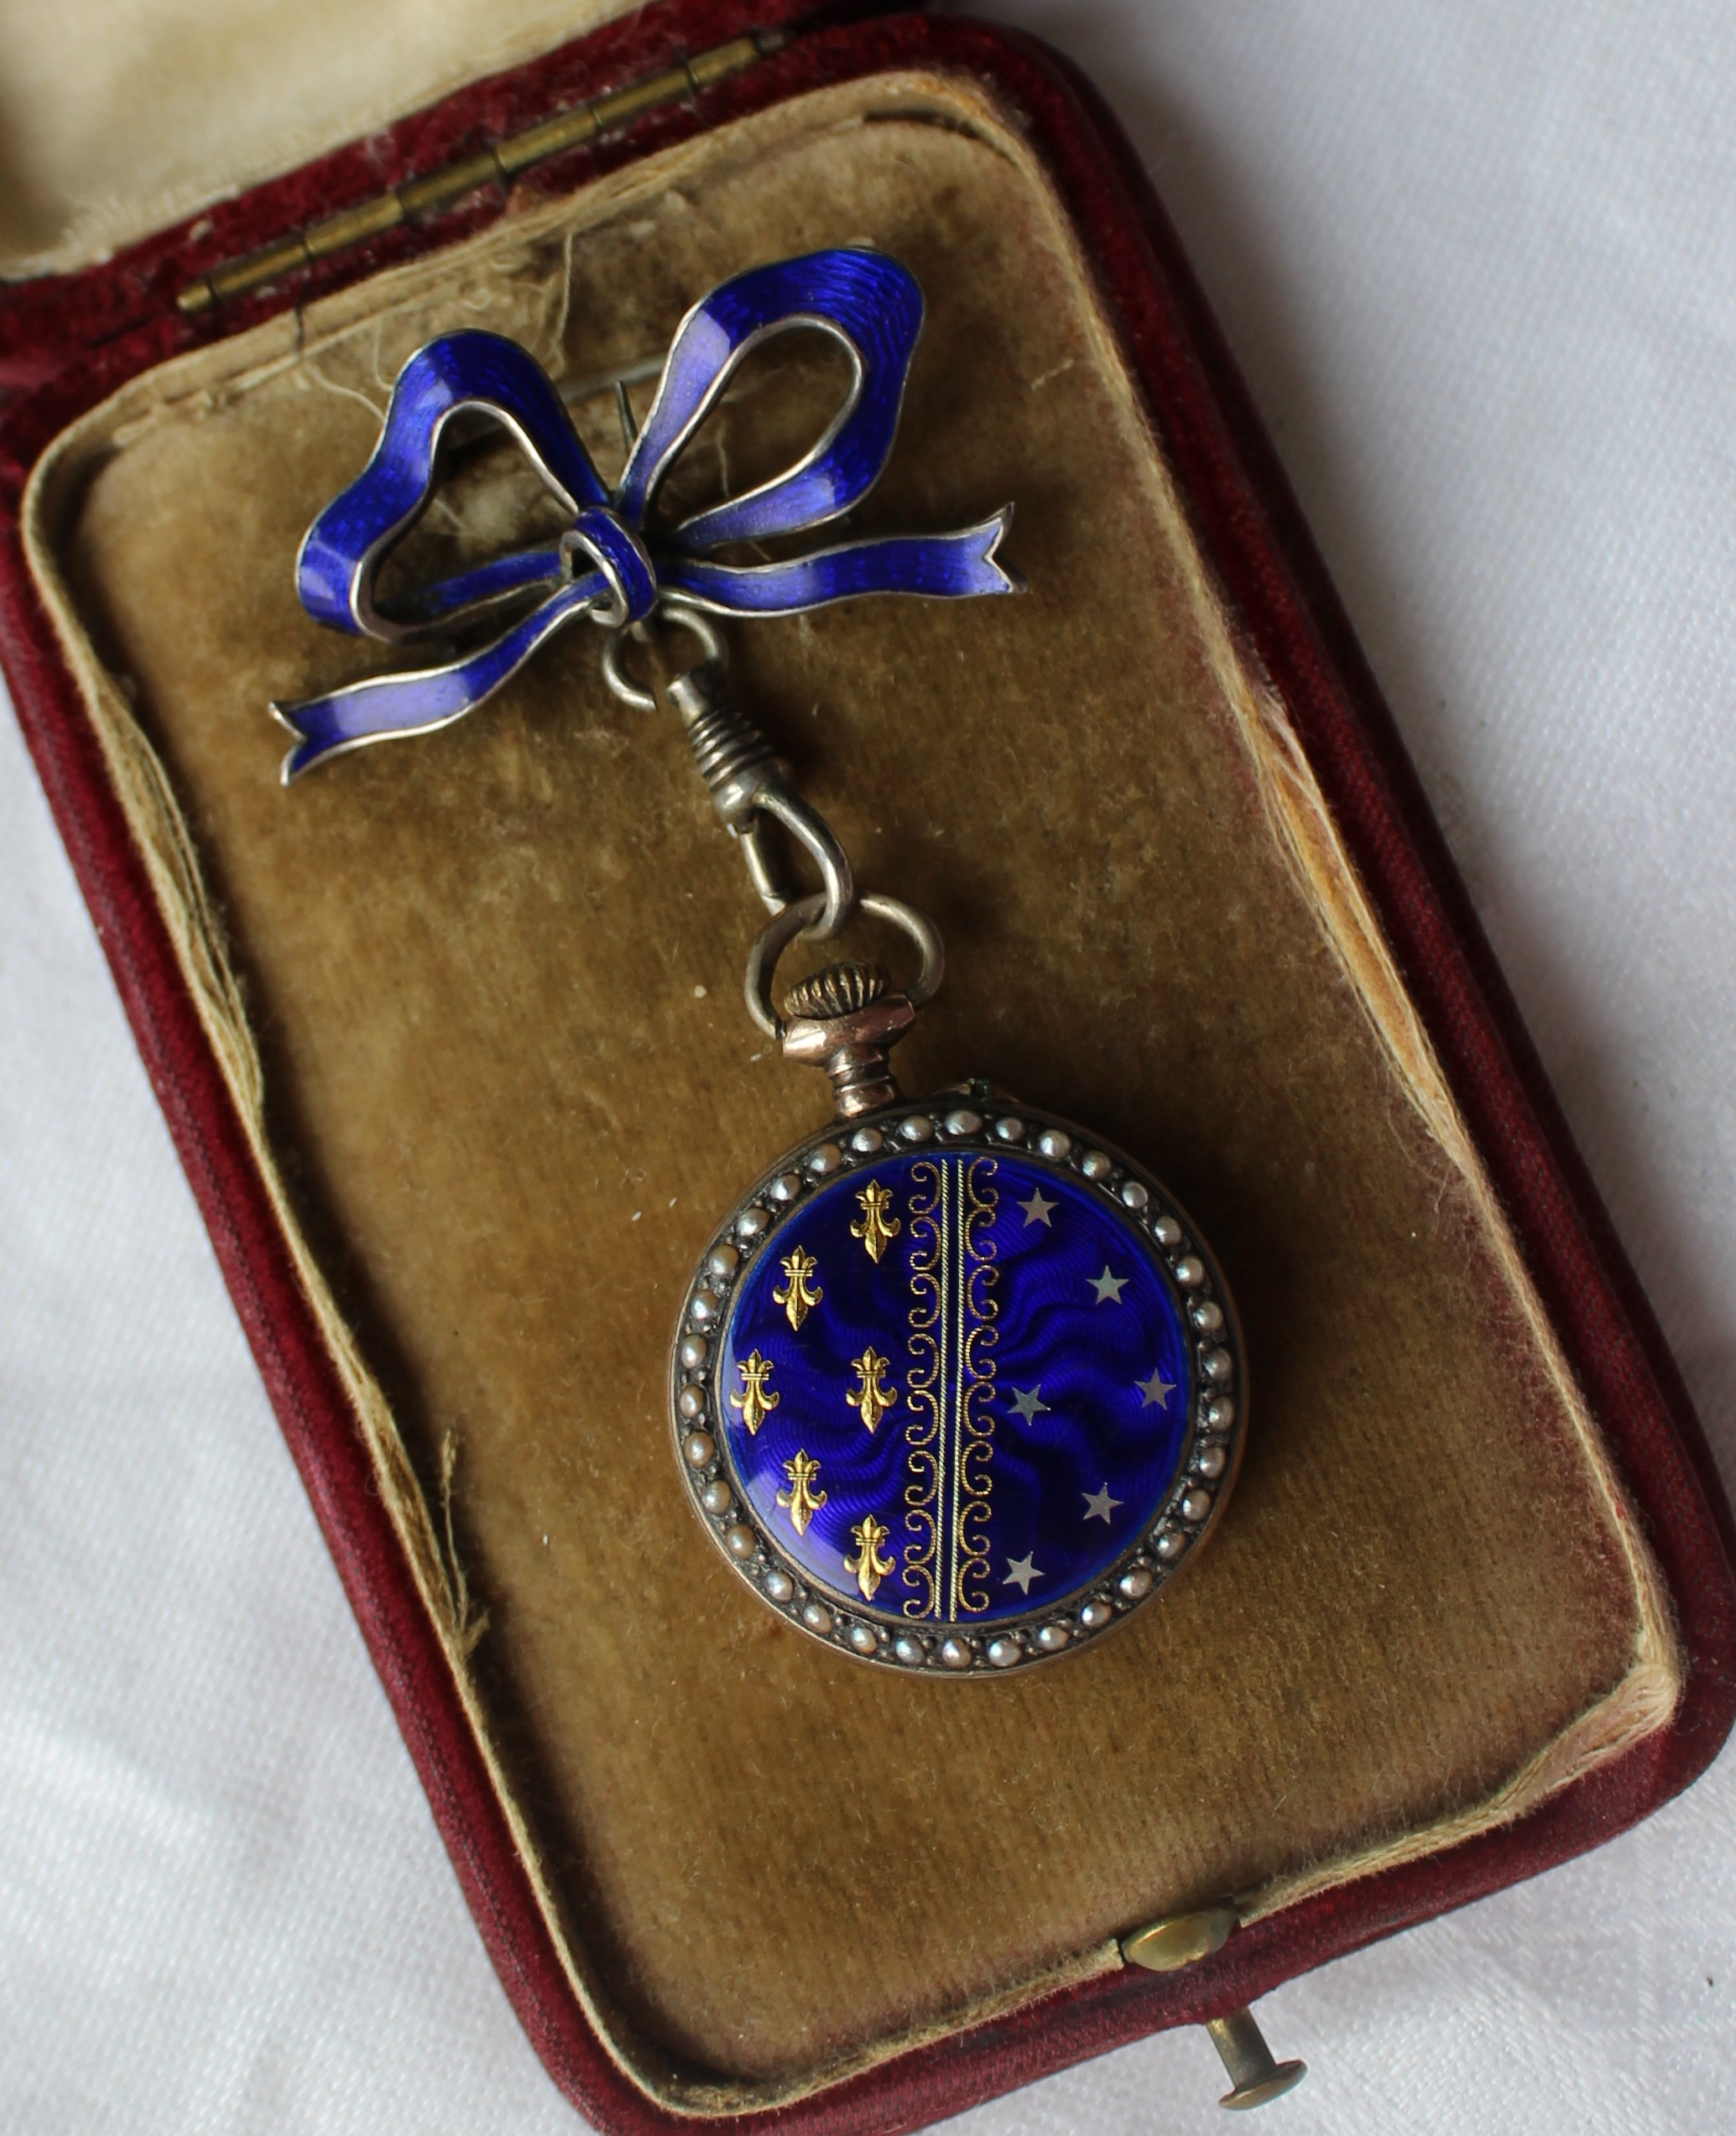 "Lot 107 - Estimates: £150 - 200 - A French white metal, enamel and seed pearl decorated fob watch, the enamel dial with Arabic numerals and pierced yellow metal hands, the bezel set with seed pearls. the back with blue enamel seed pearls, stars and fleur de lys, on a blue enamel bow suspension clasp, marked to the inside ""Fauvette Had., Argent Dore 0.935"""